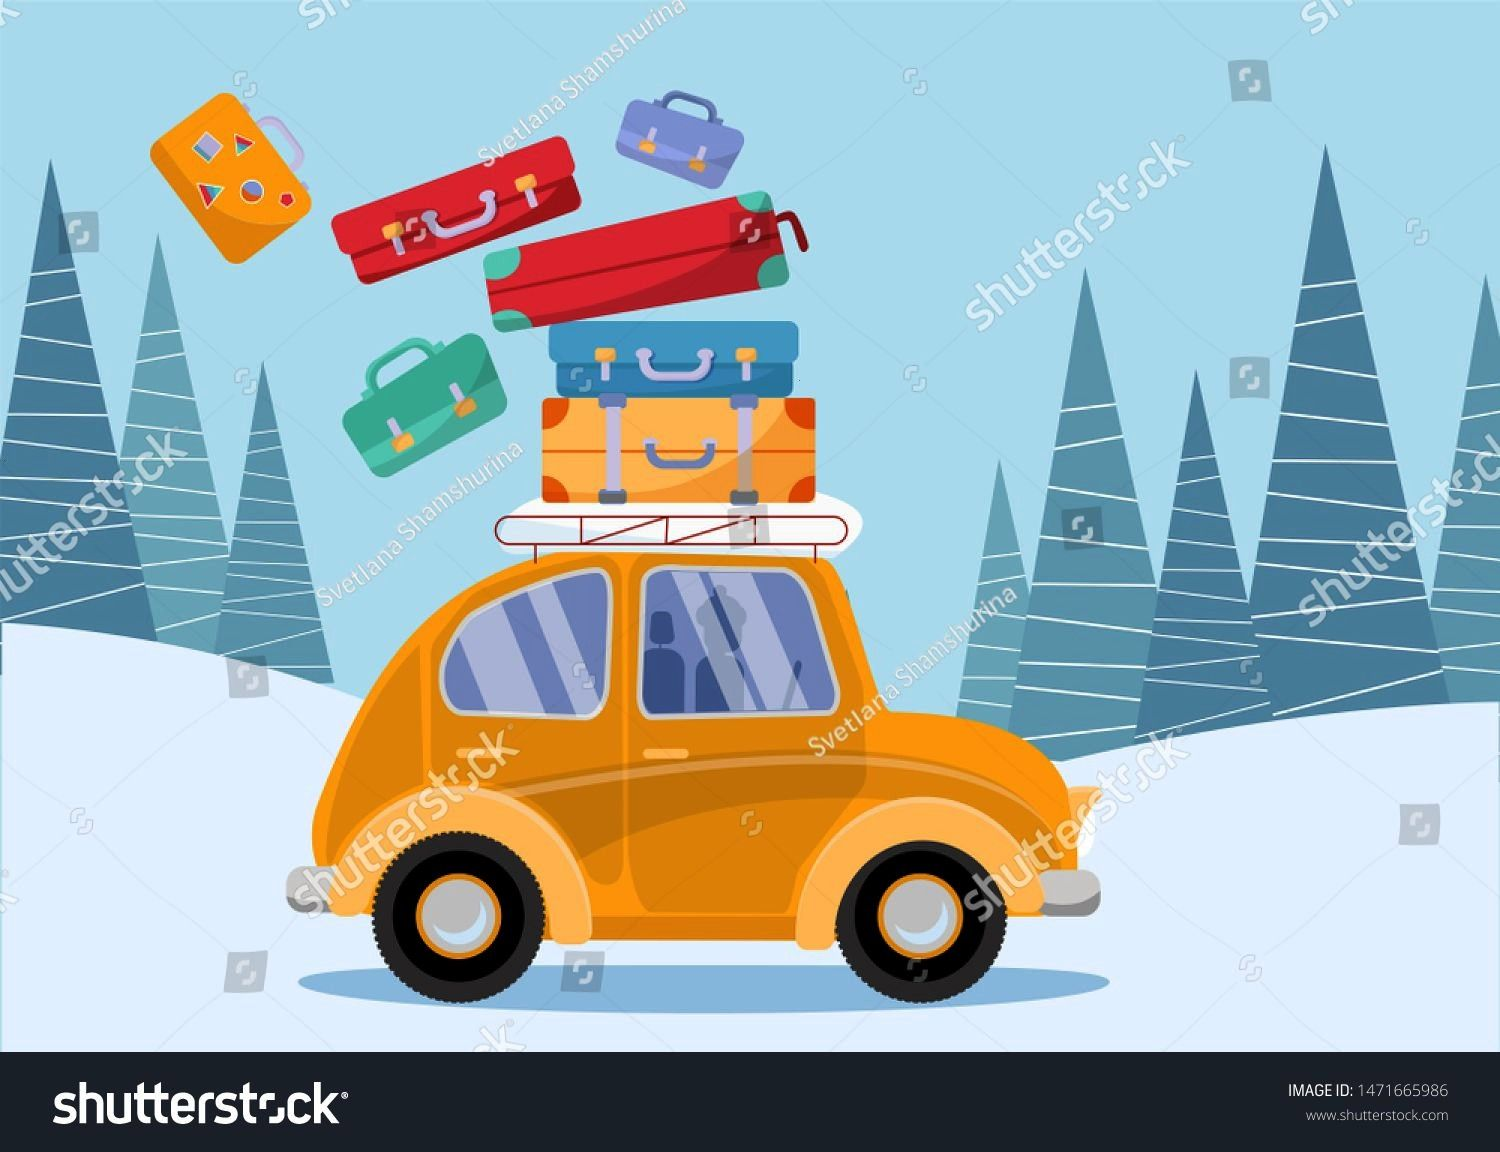 concept. Yellow vintage car with travel suitcases on roof. Winter tourism, travel, trip. Flat carto